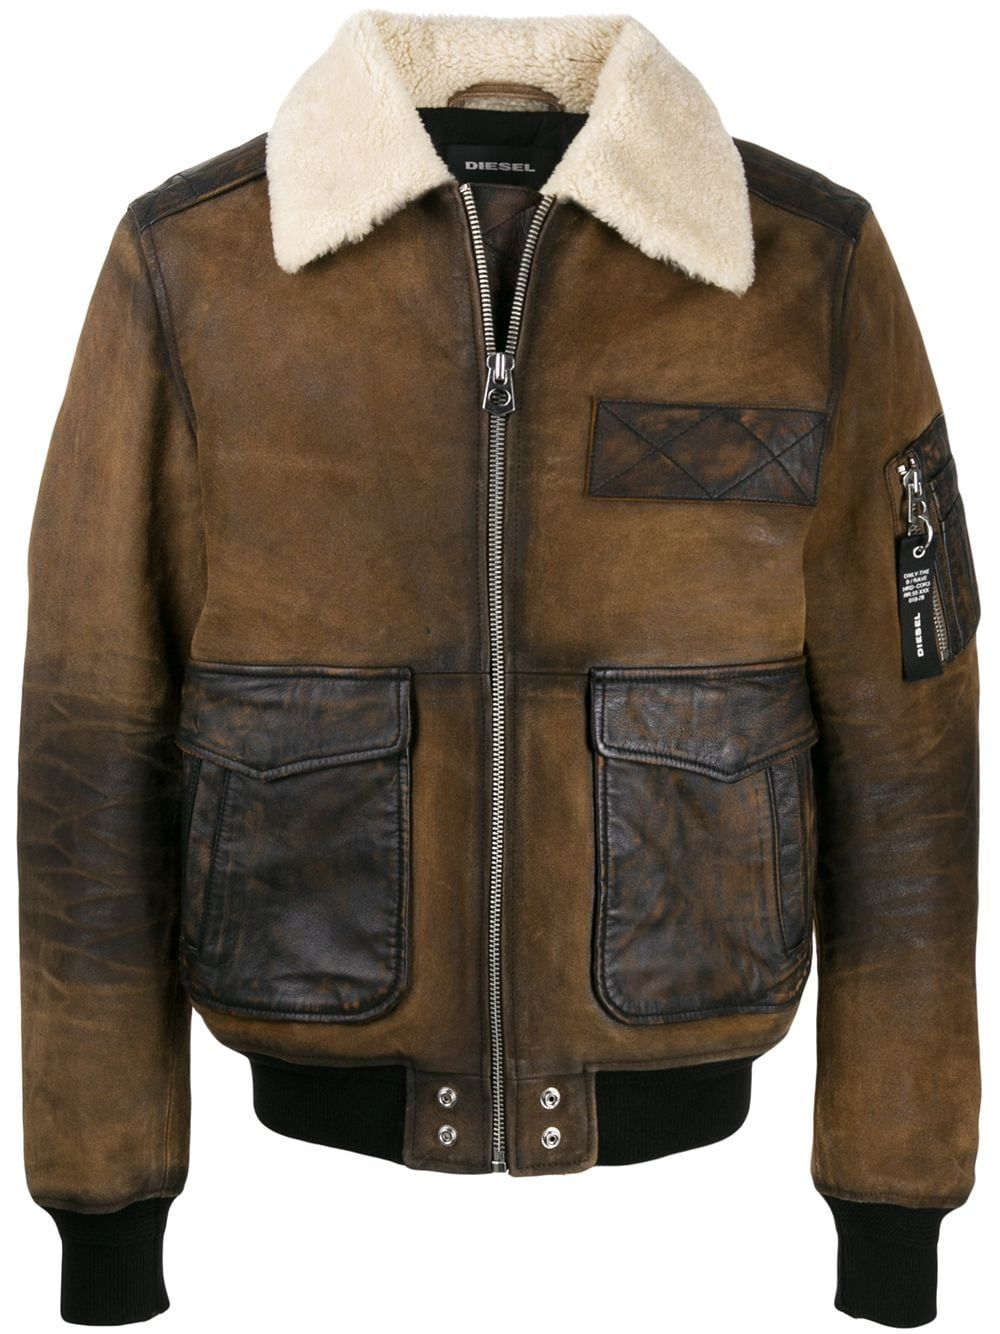 Aviator jacket in crust leather Aviator jackets, Jackets